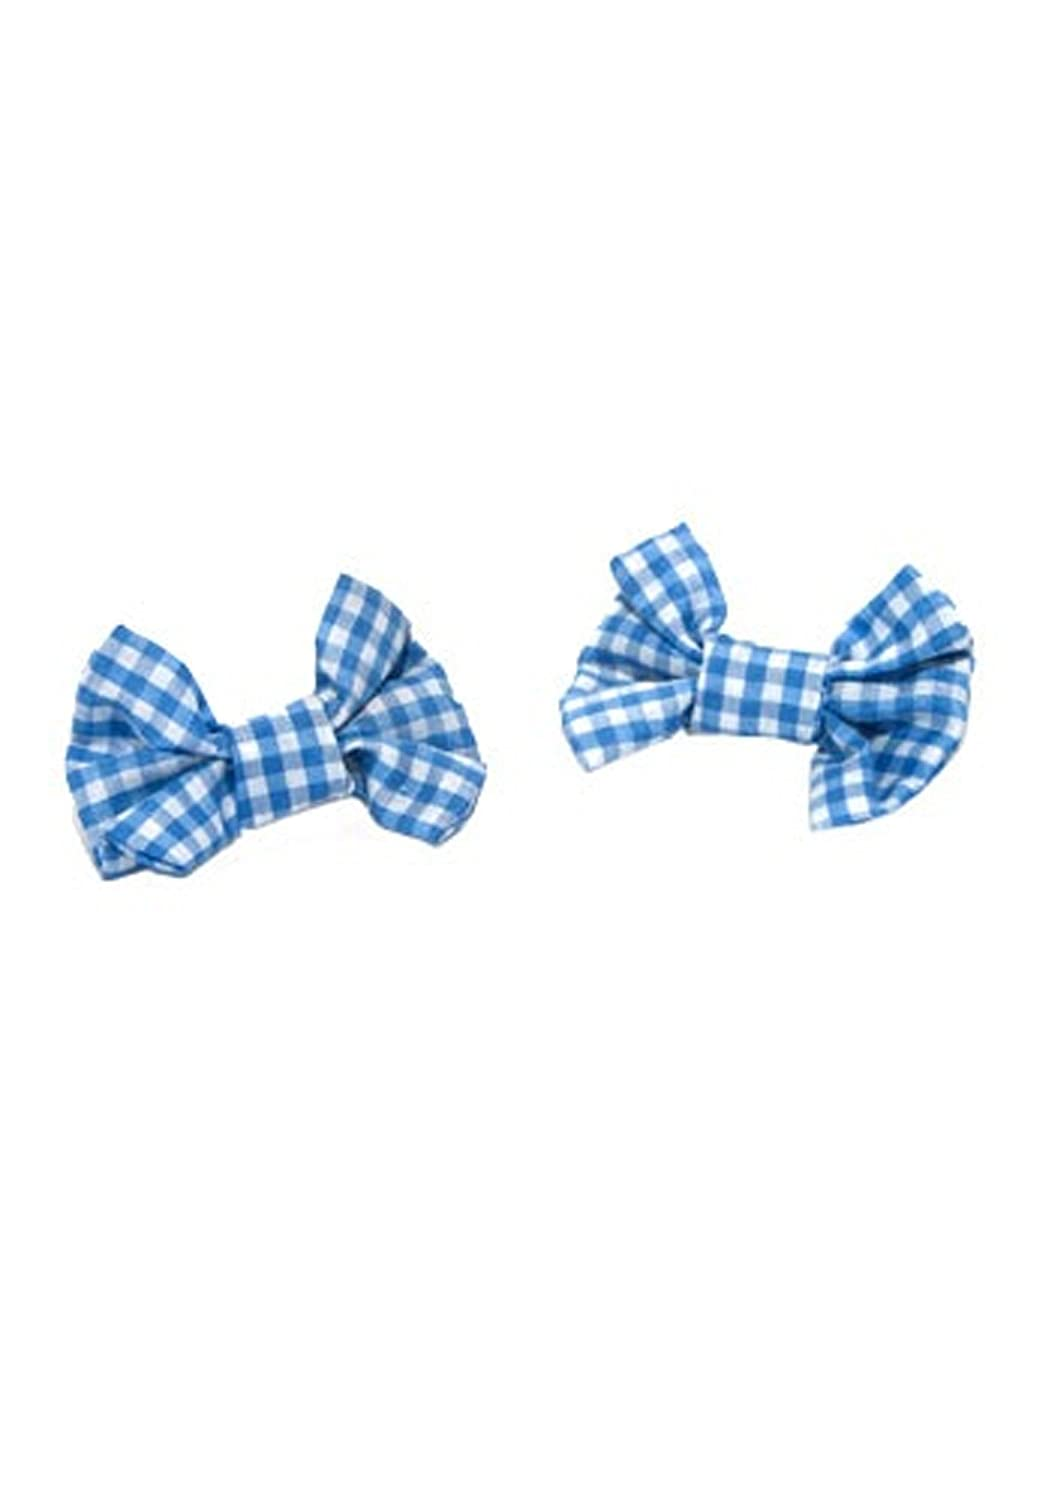 Dorothy Hair Bows Standard Fun Costumes